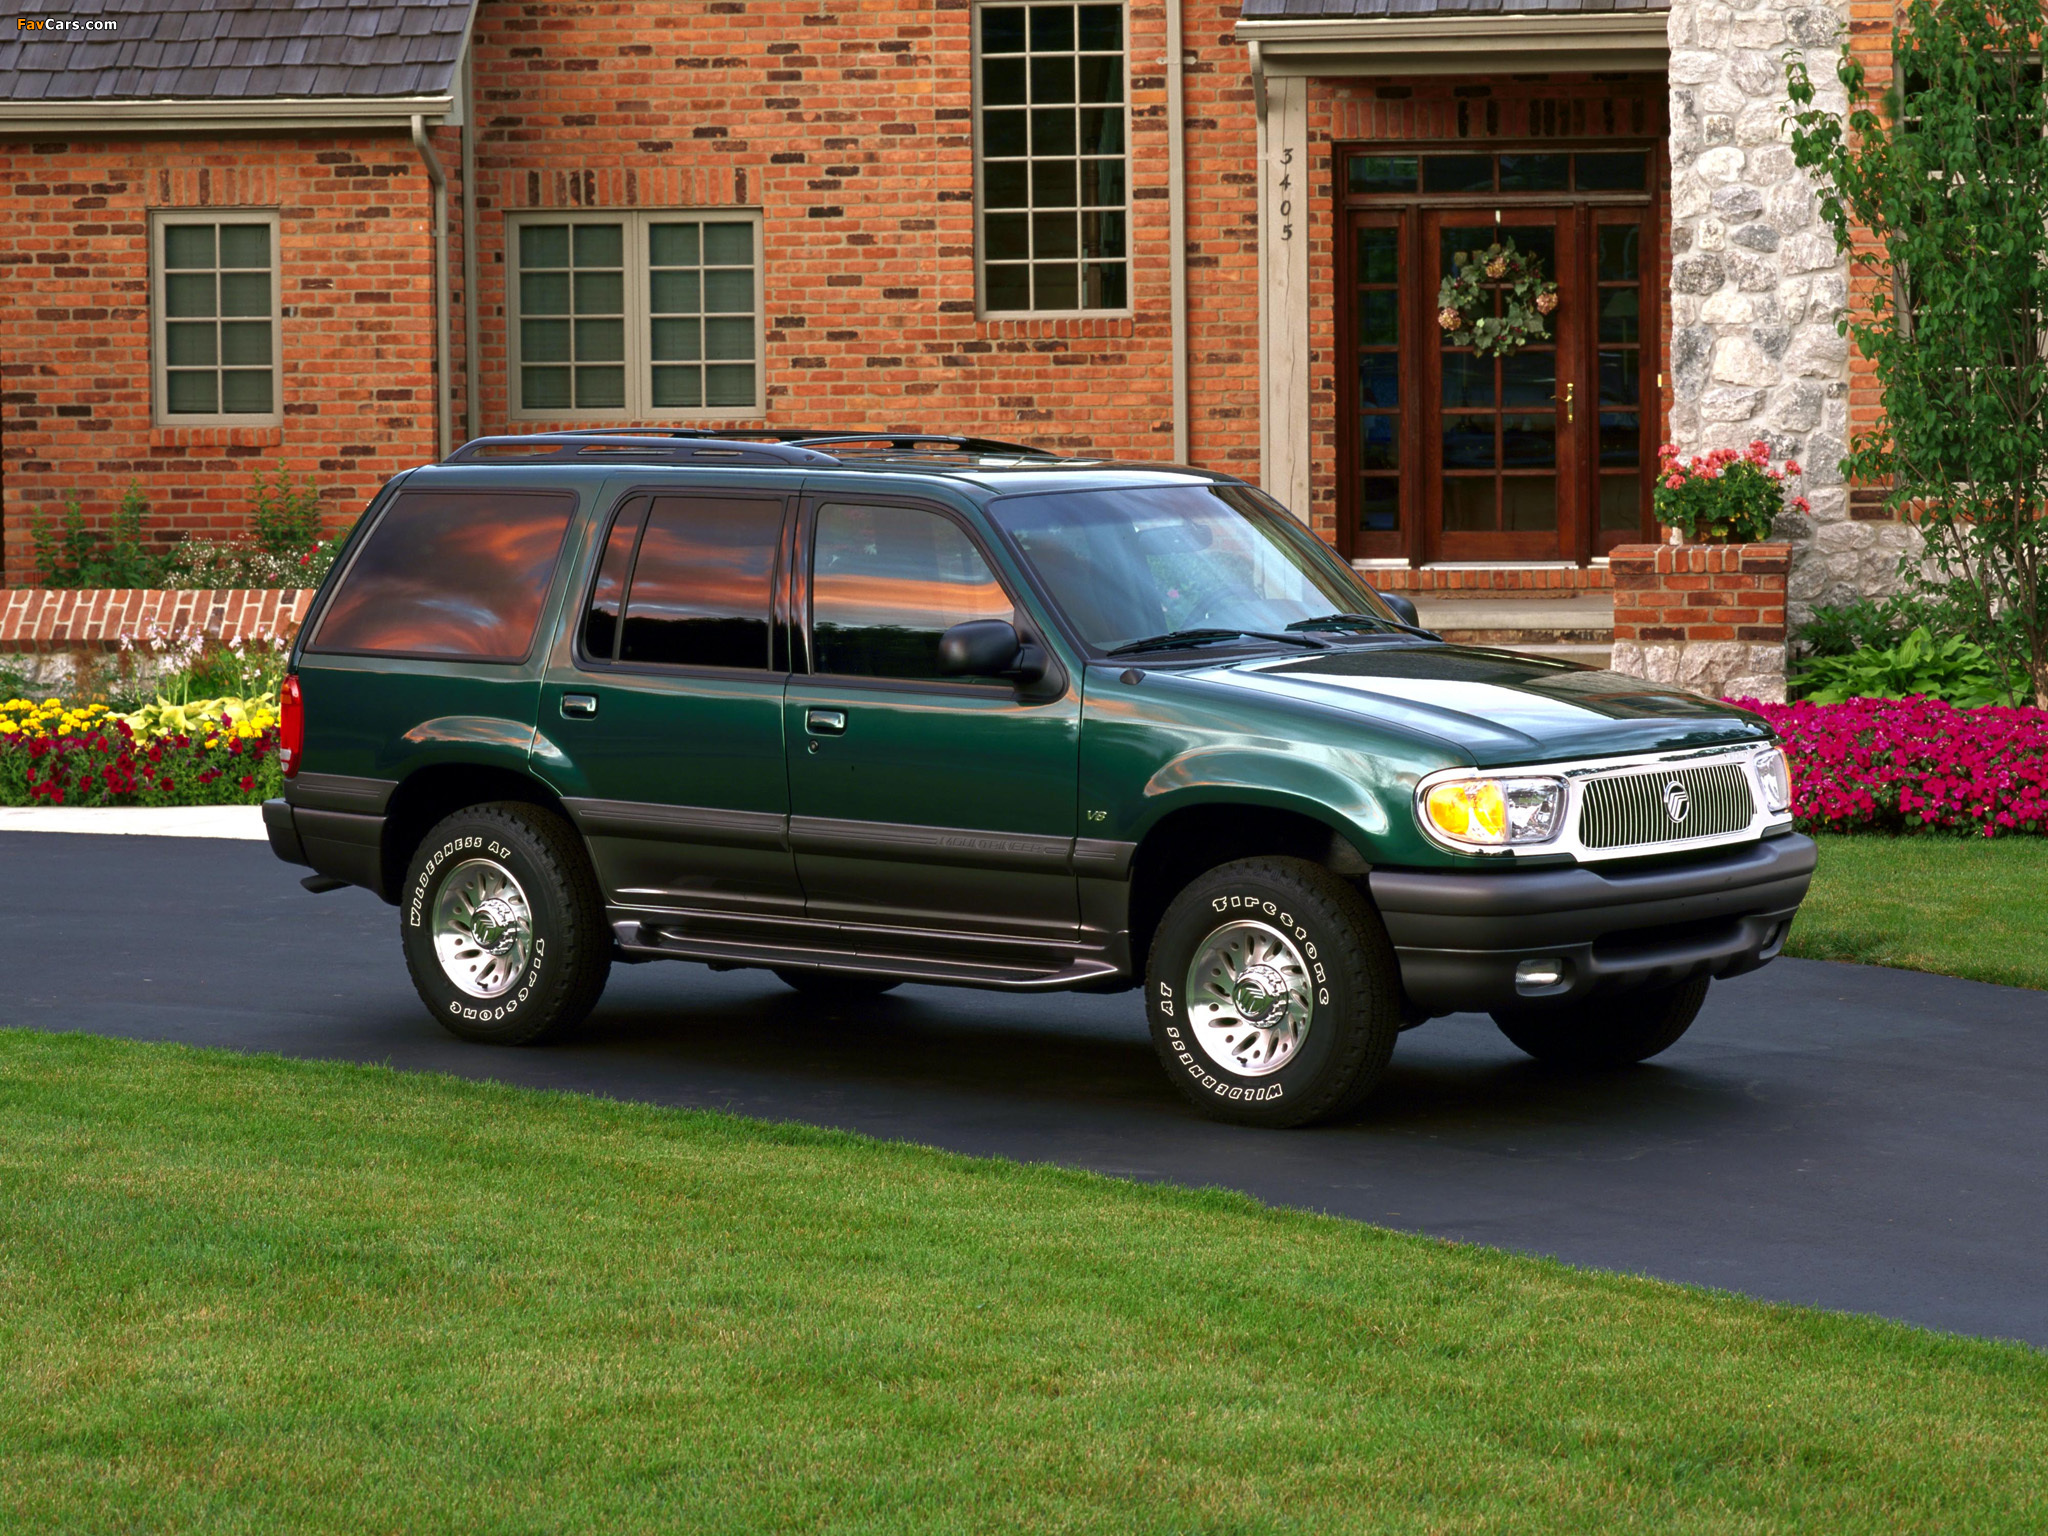 1998 mercury mountaineer ours is identical to this brochure photo